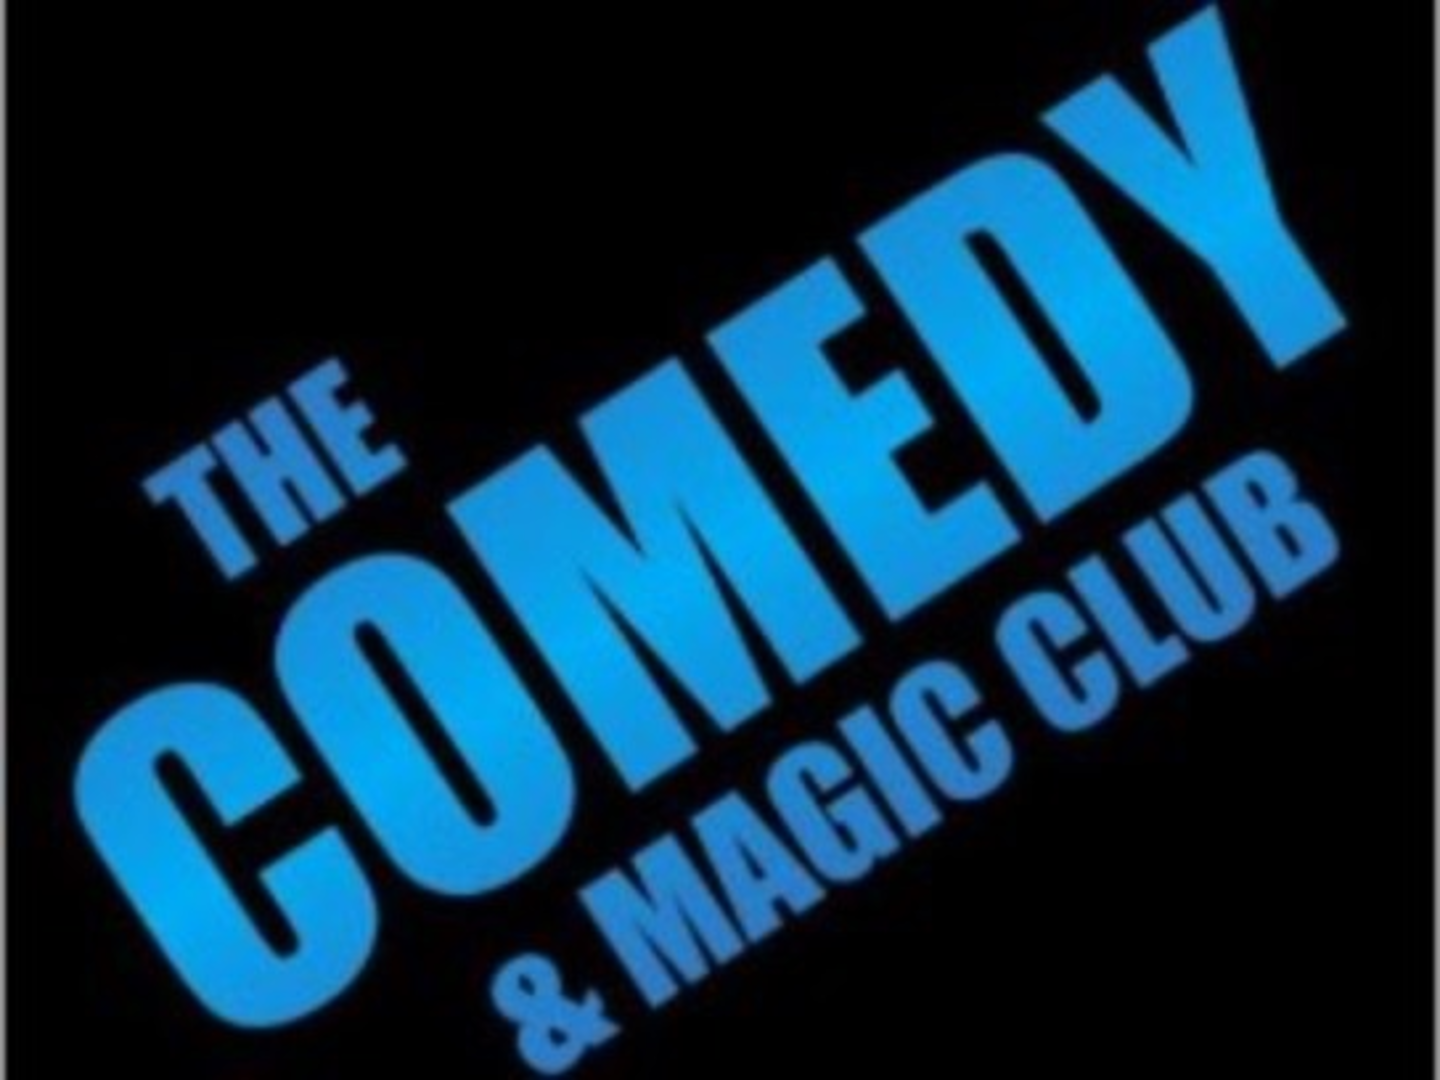 The Comedy and Magic Club